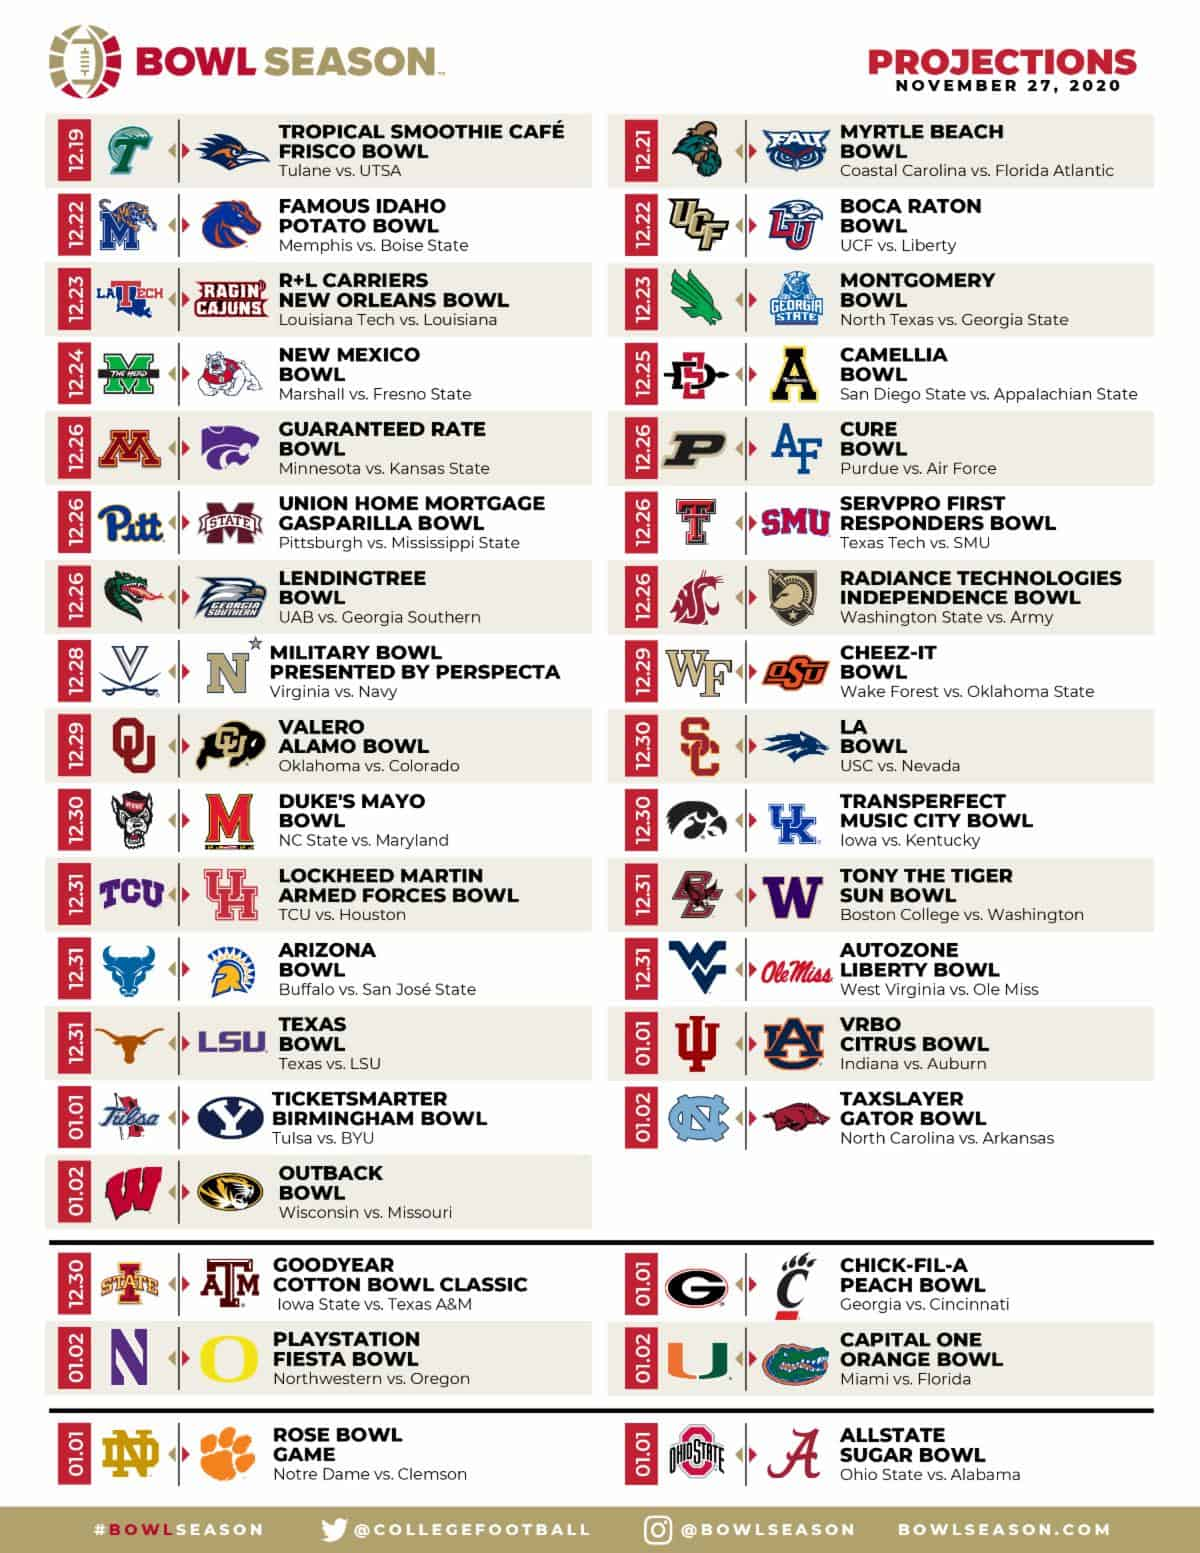 Bowl Season Projections